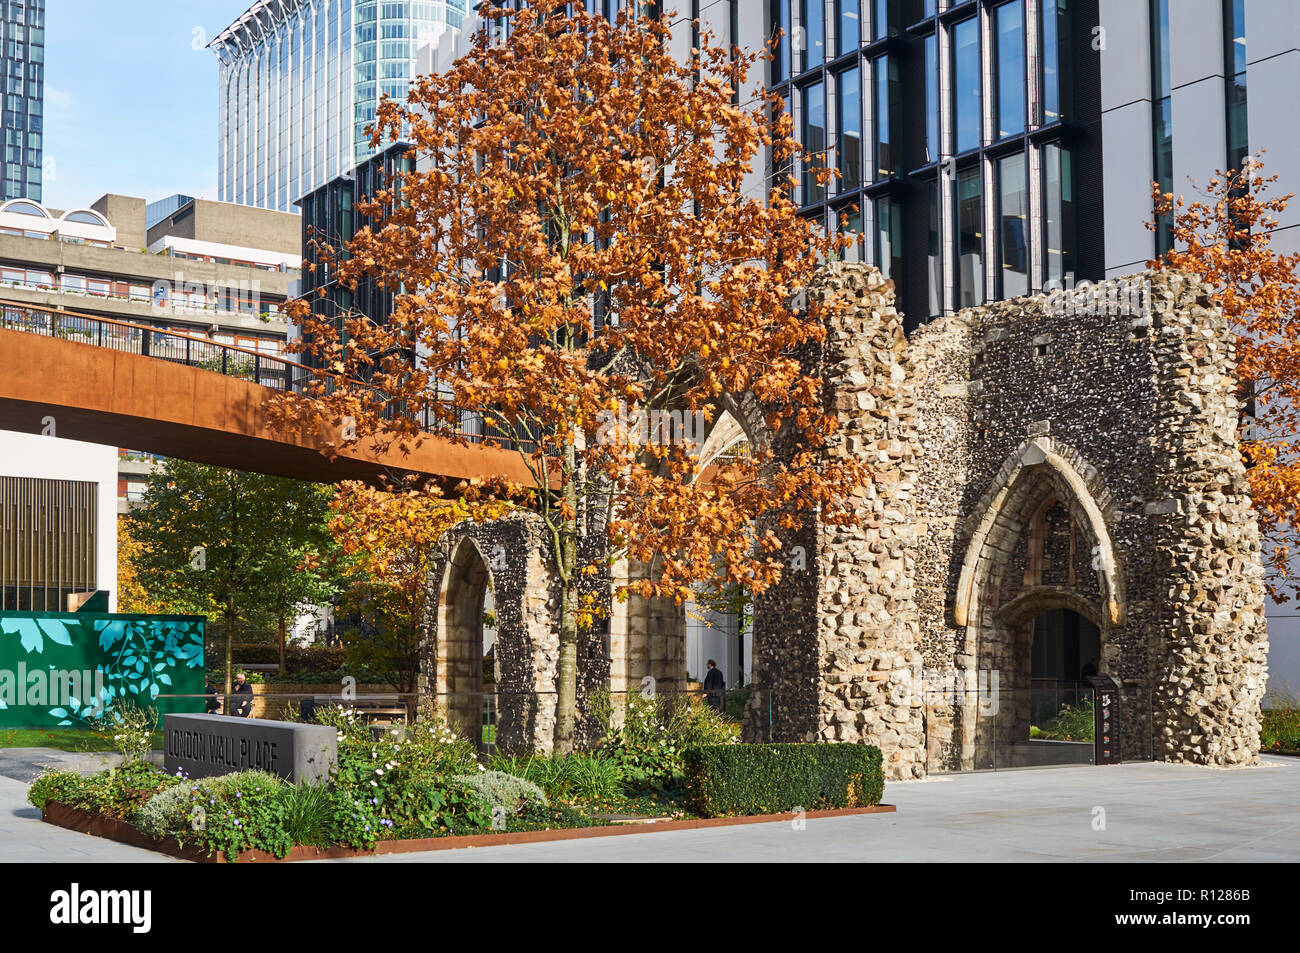 Remains of the medieval St Alphege church on London Wall near the Barbican, in the City of London, UK - Stock Image